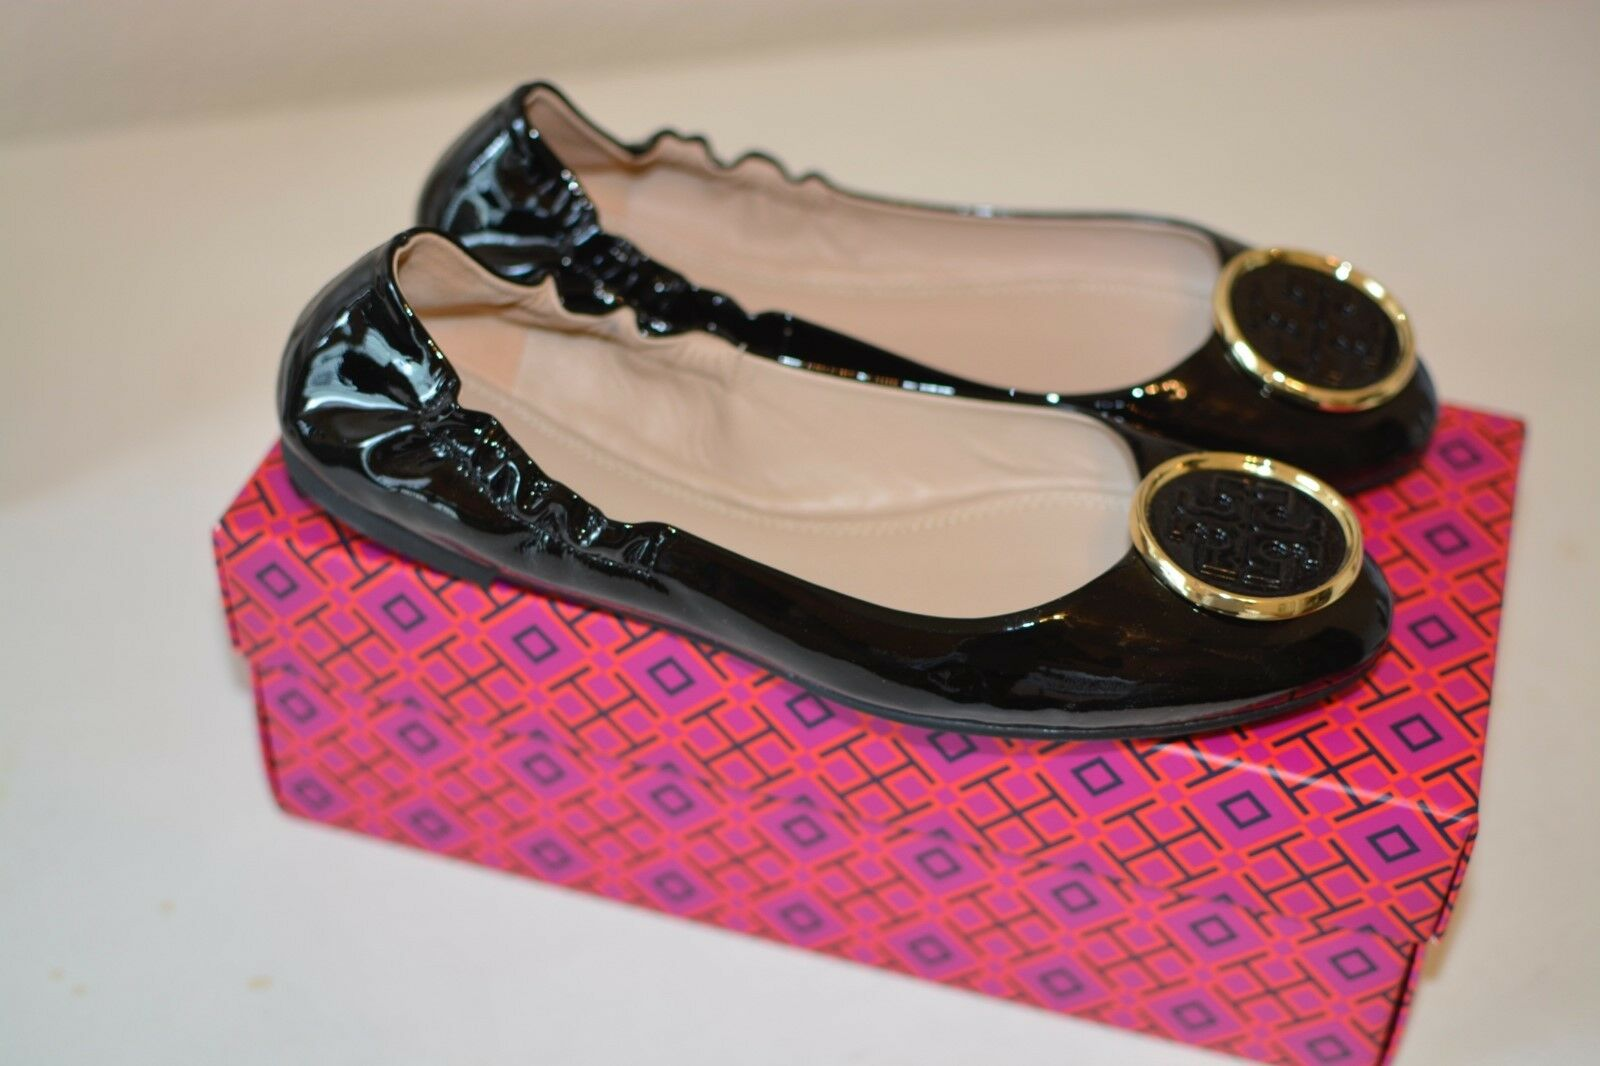 Tory Burch  Twiggie  Black Patent Flats (Size 9) New with Box